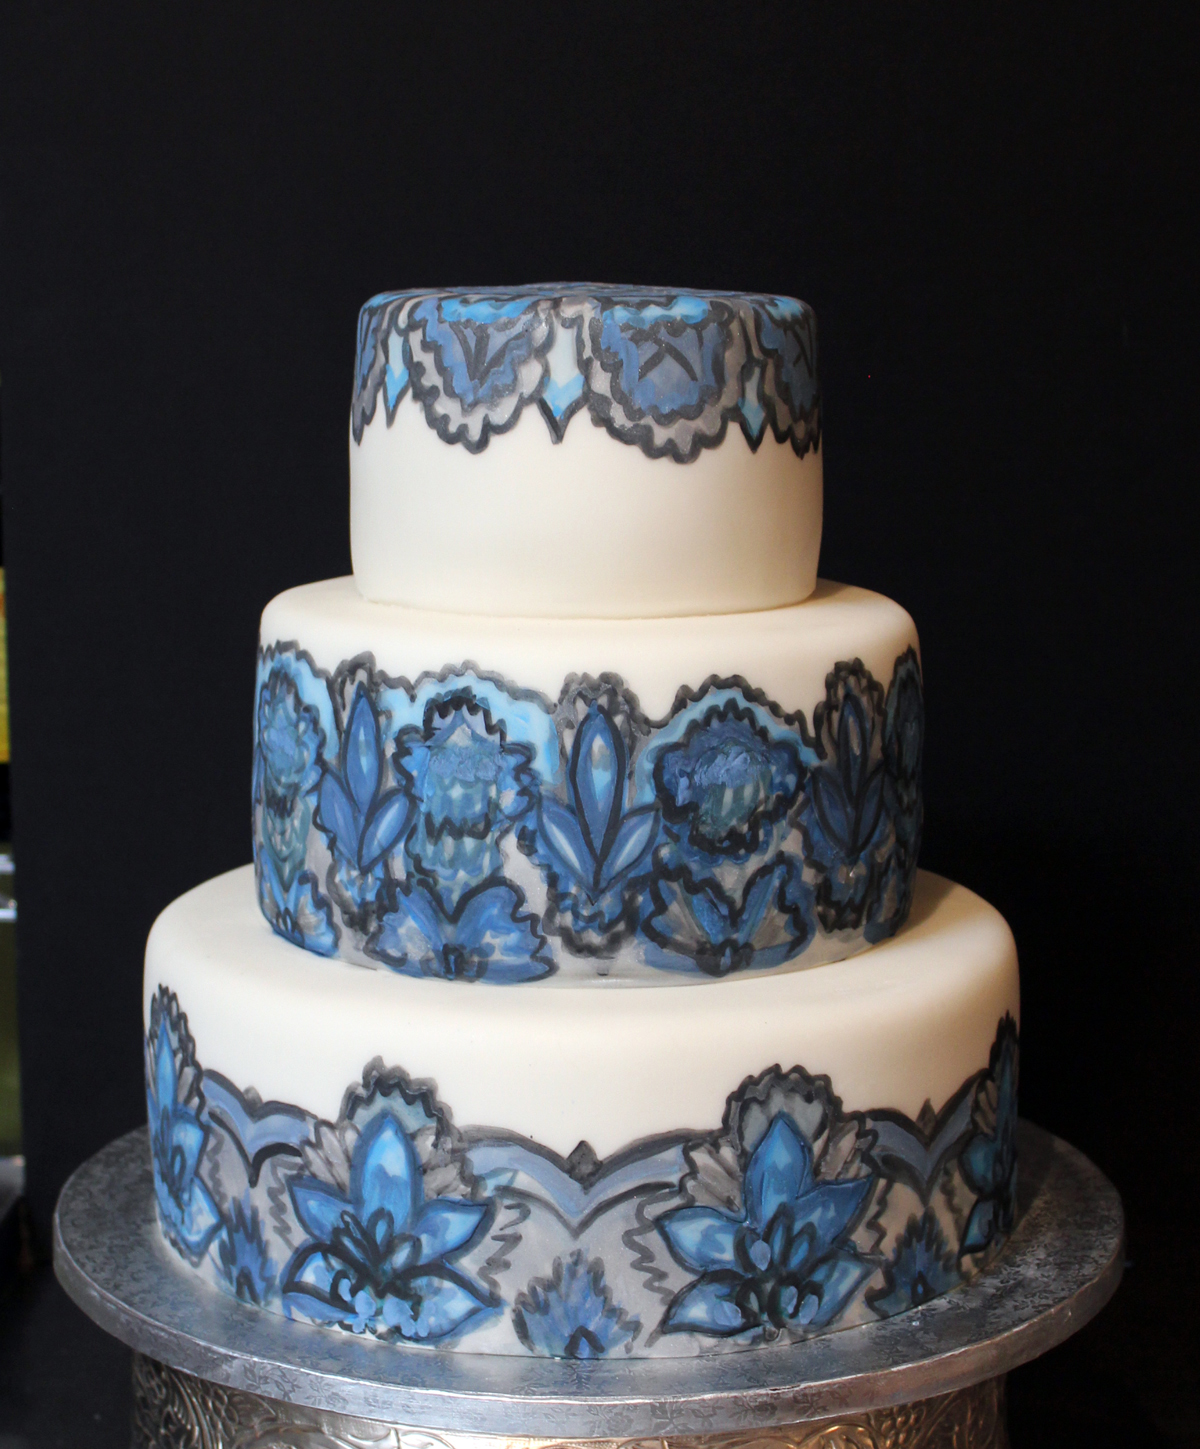 Sedona Cake Couture: A Gorgeous Hand Painted Wedding Cake